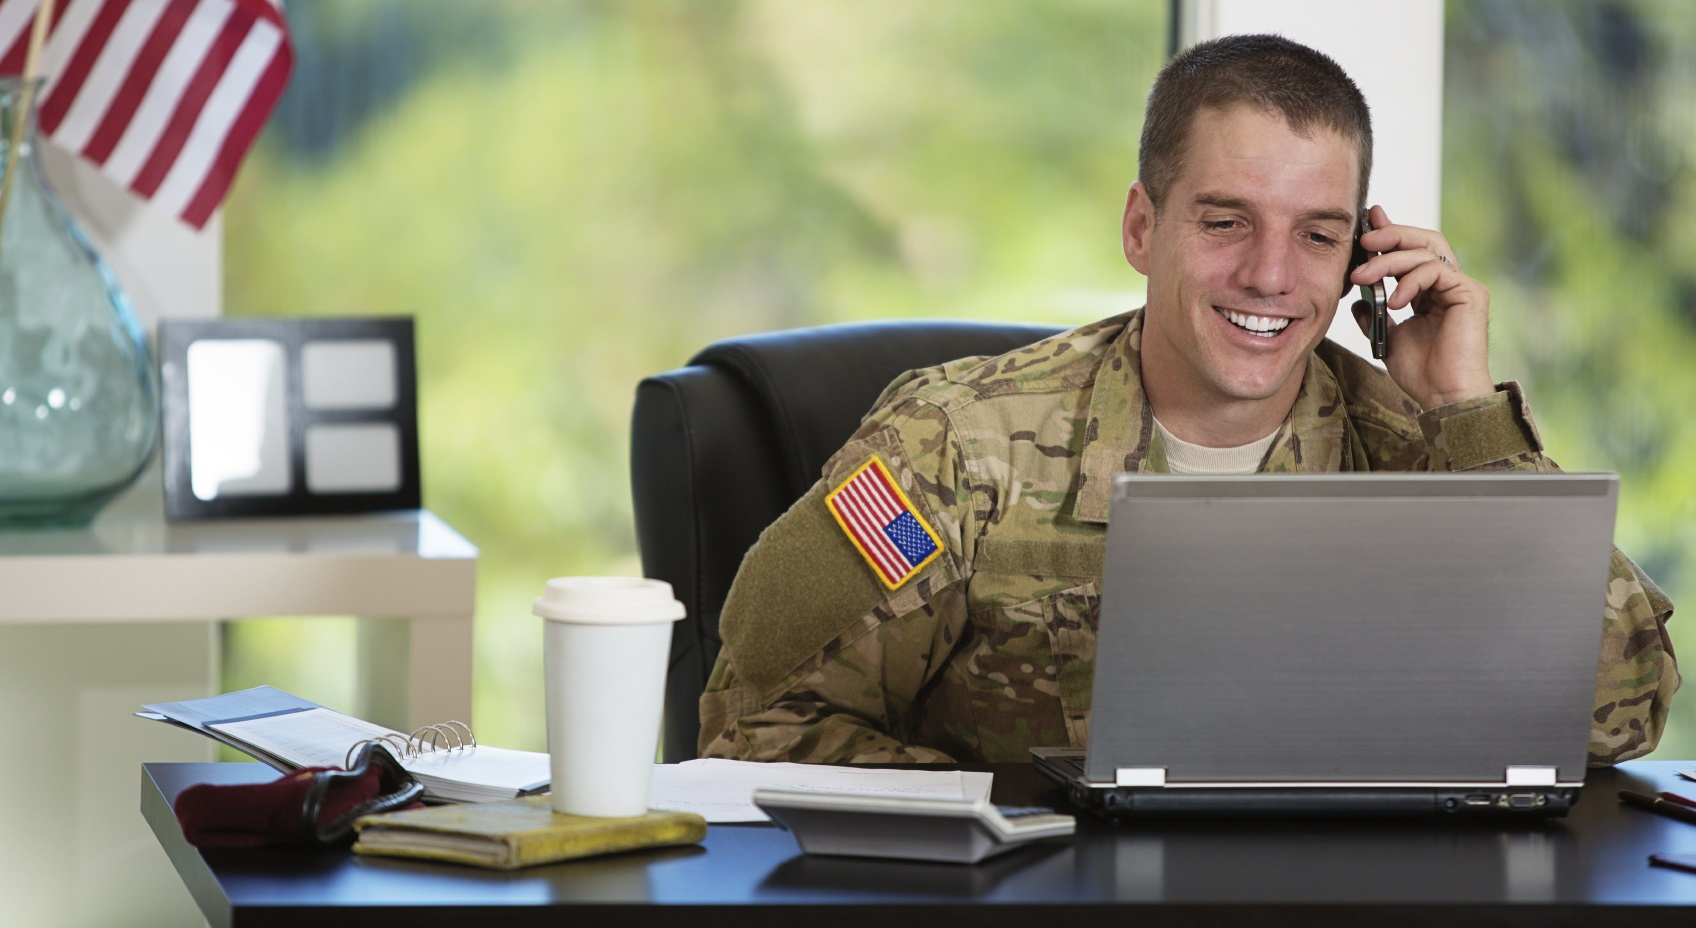 Military Student at Desk